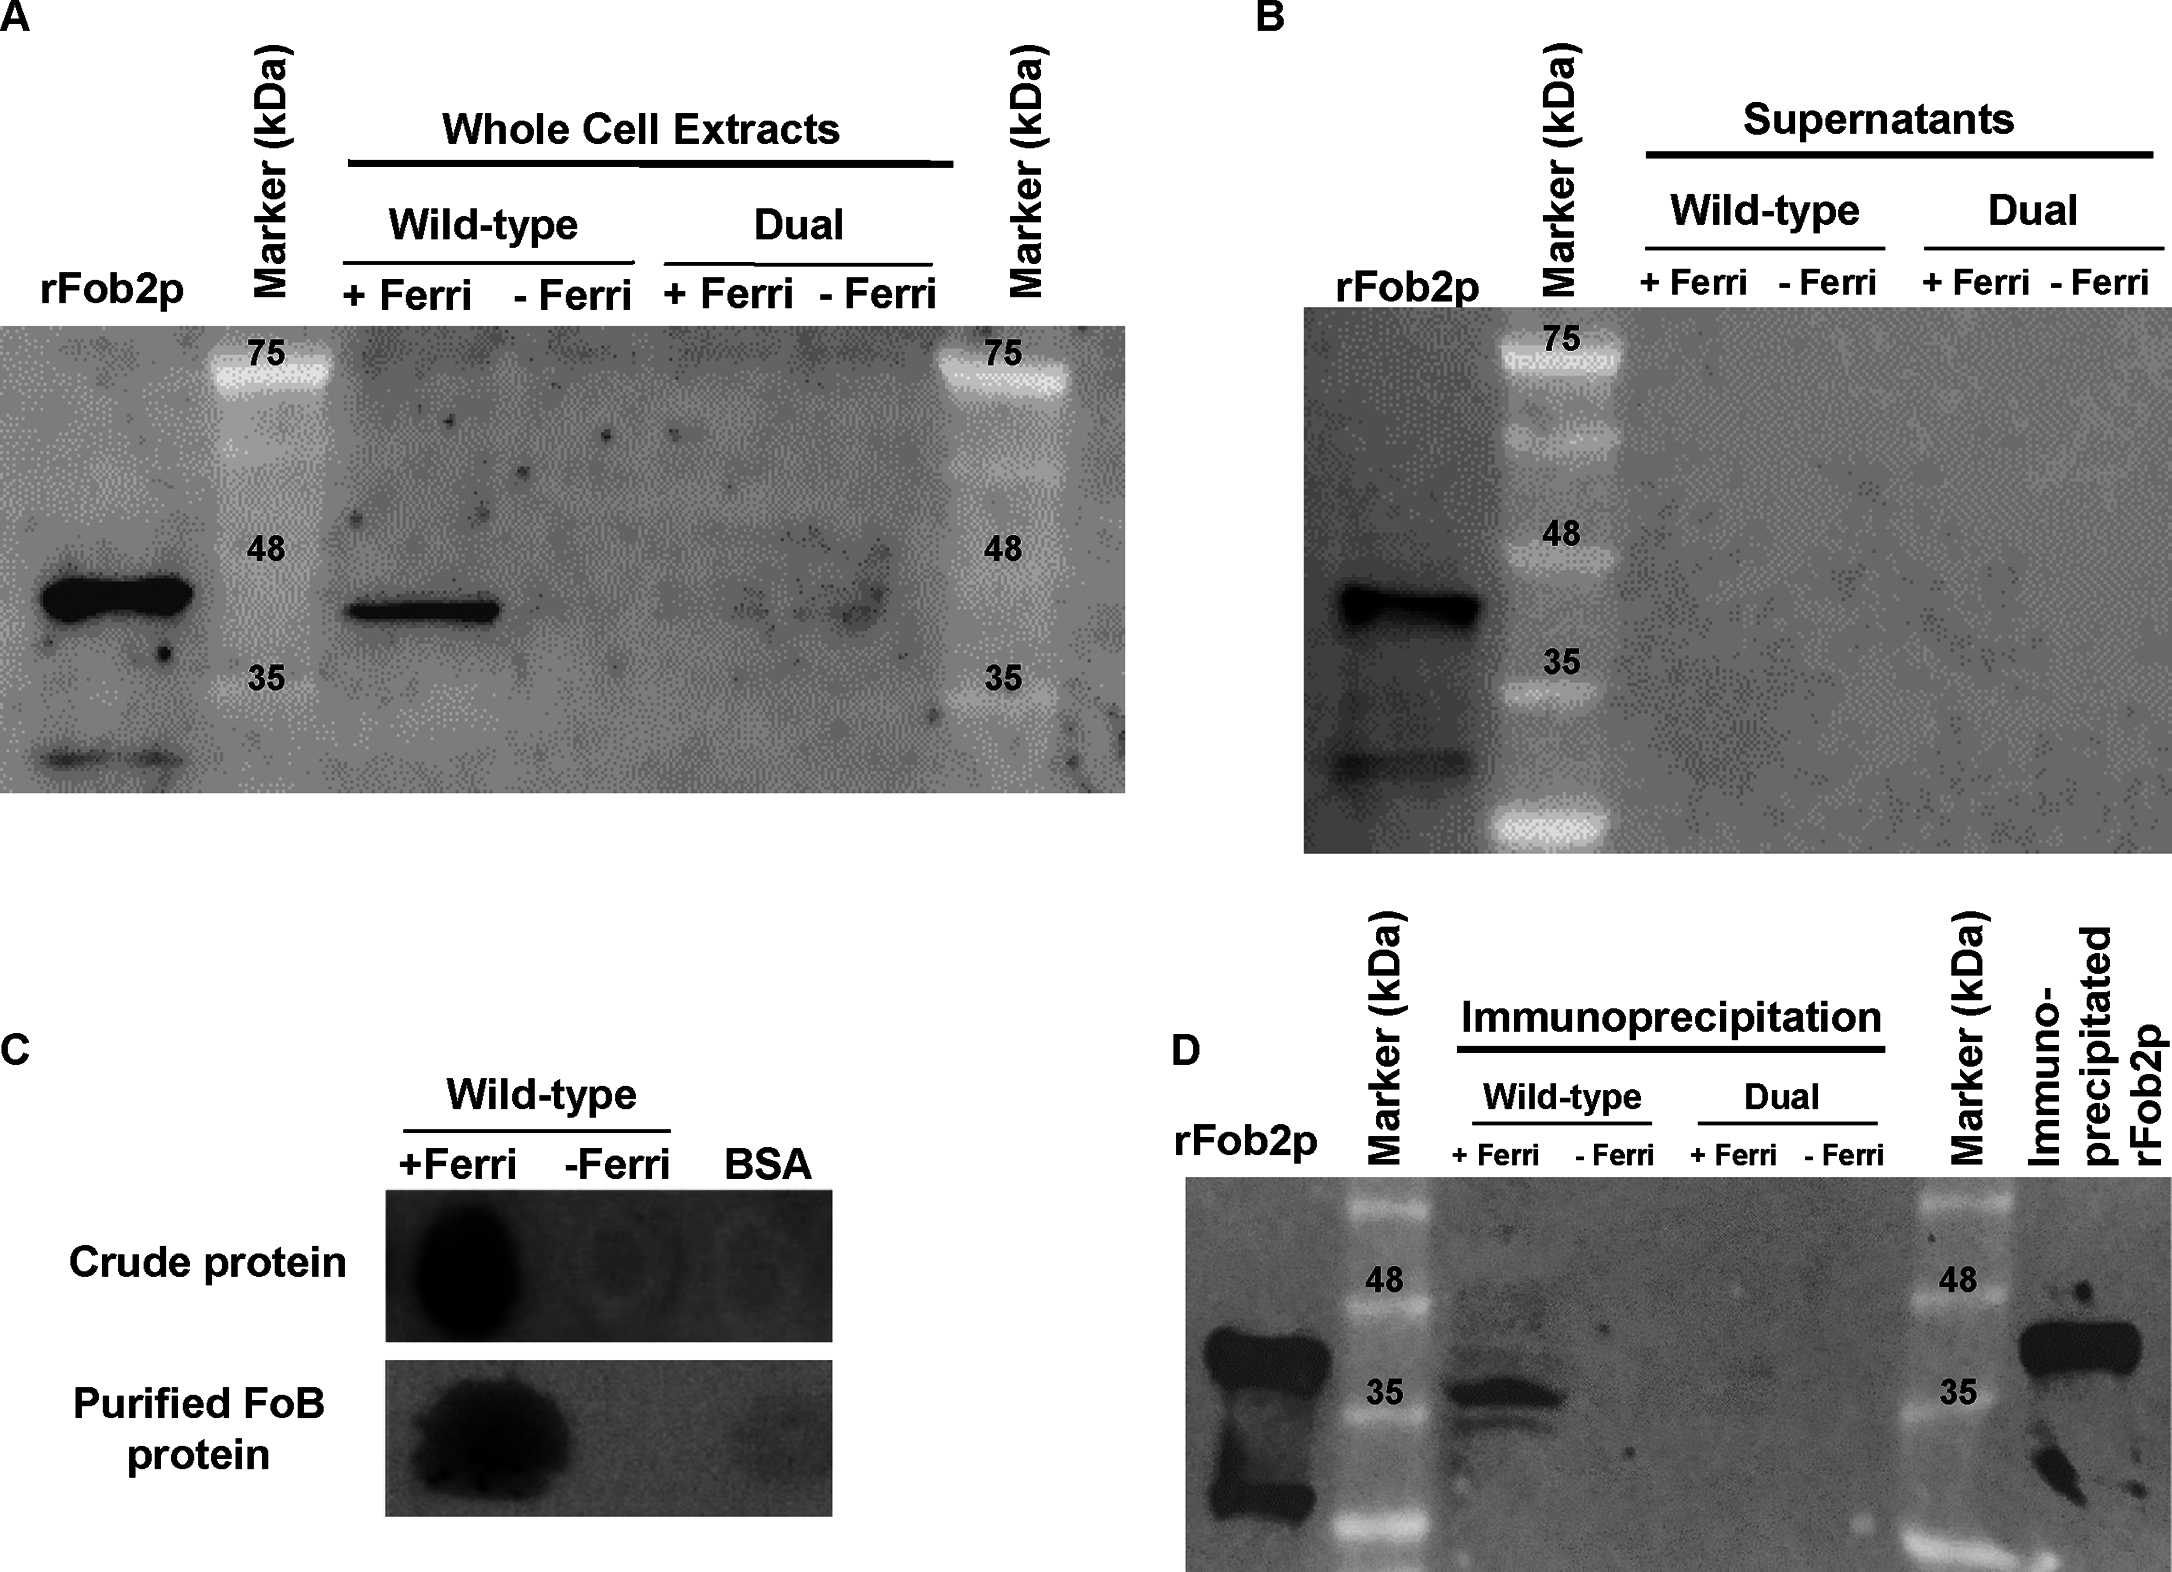 Western blot analysis demonstrating that Fob proteins are cell-associated, not secreted, and bind to radiolabeled ferrioxamine.